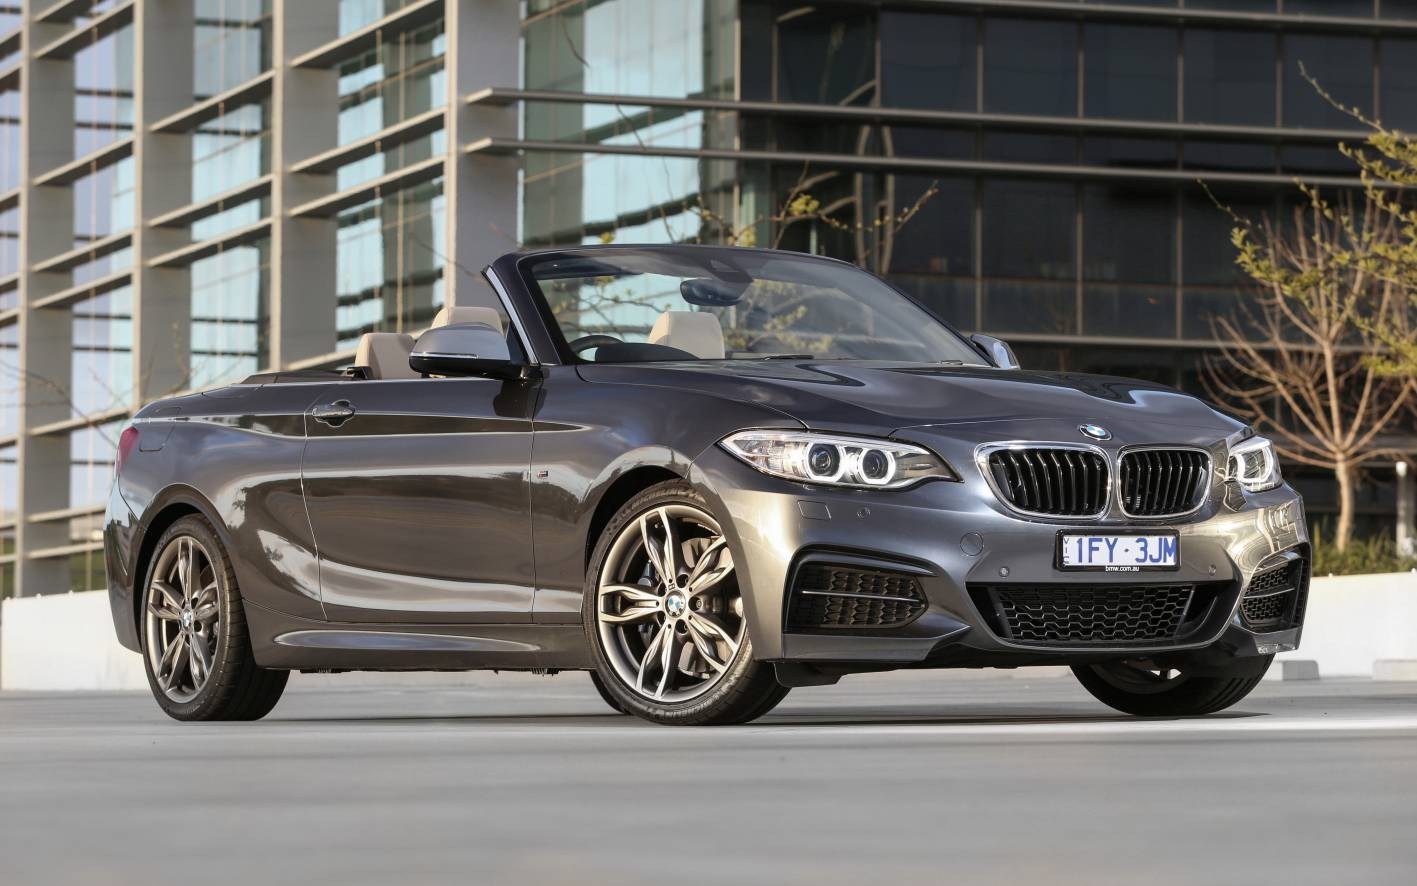 Control Lights With Smartphone More Powerful Bmw 240i Leads Updated 2 Series Range